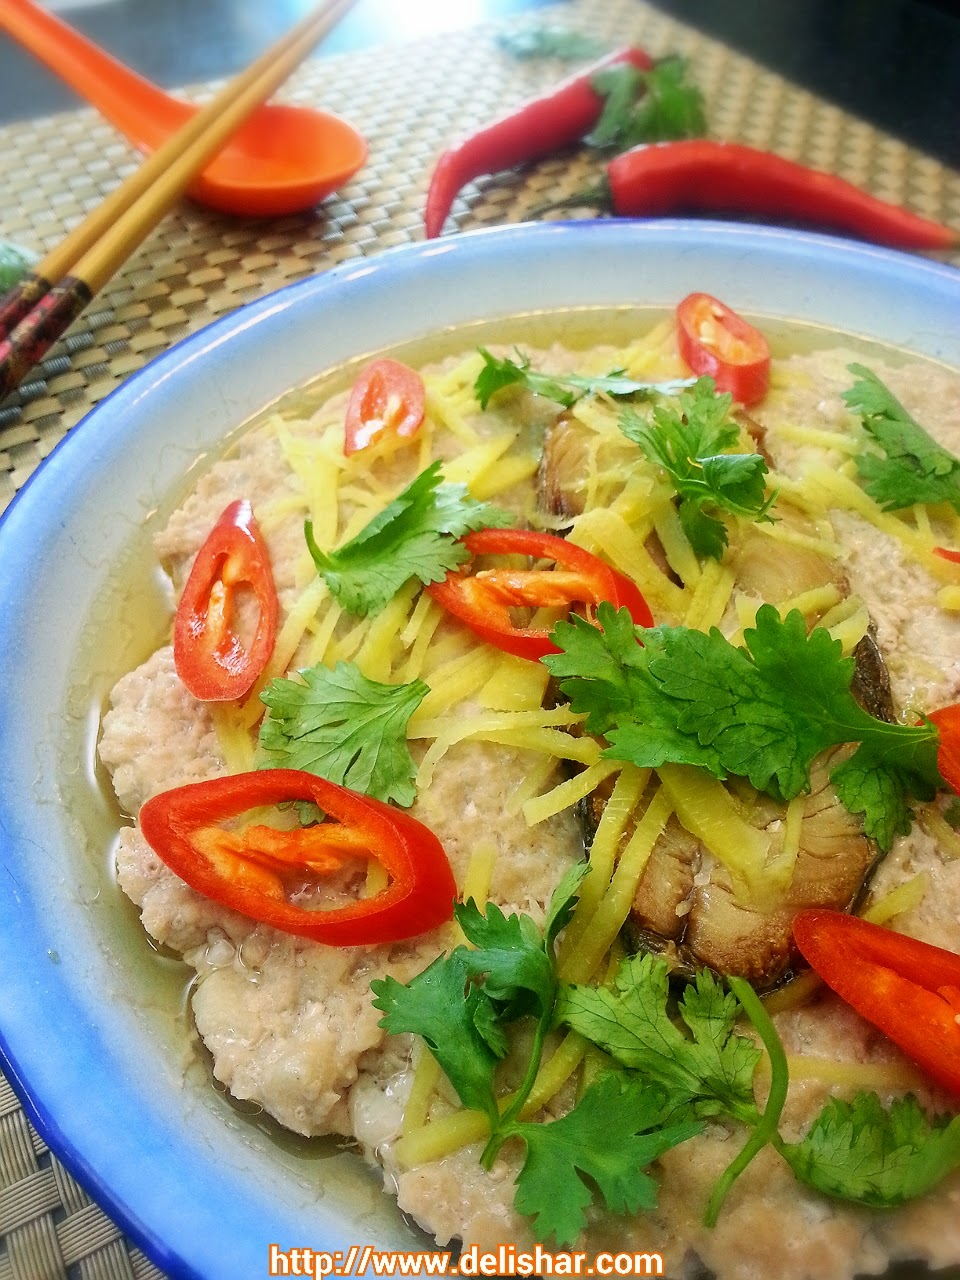 Steam pork with salted fish delishar singapore cooking recipe my late grandfather will be very proud of me this is one of his favourite dish and he makes it ever so often when he was still around forumfinder Choice Image